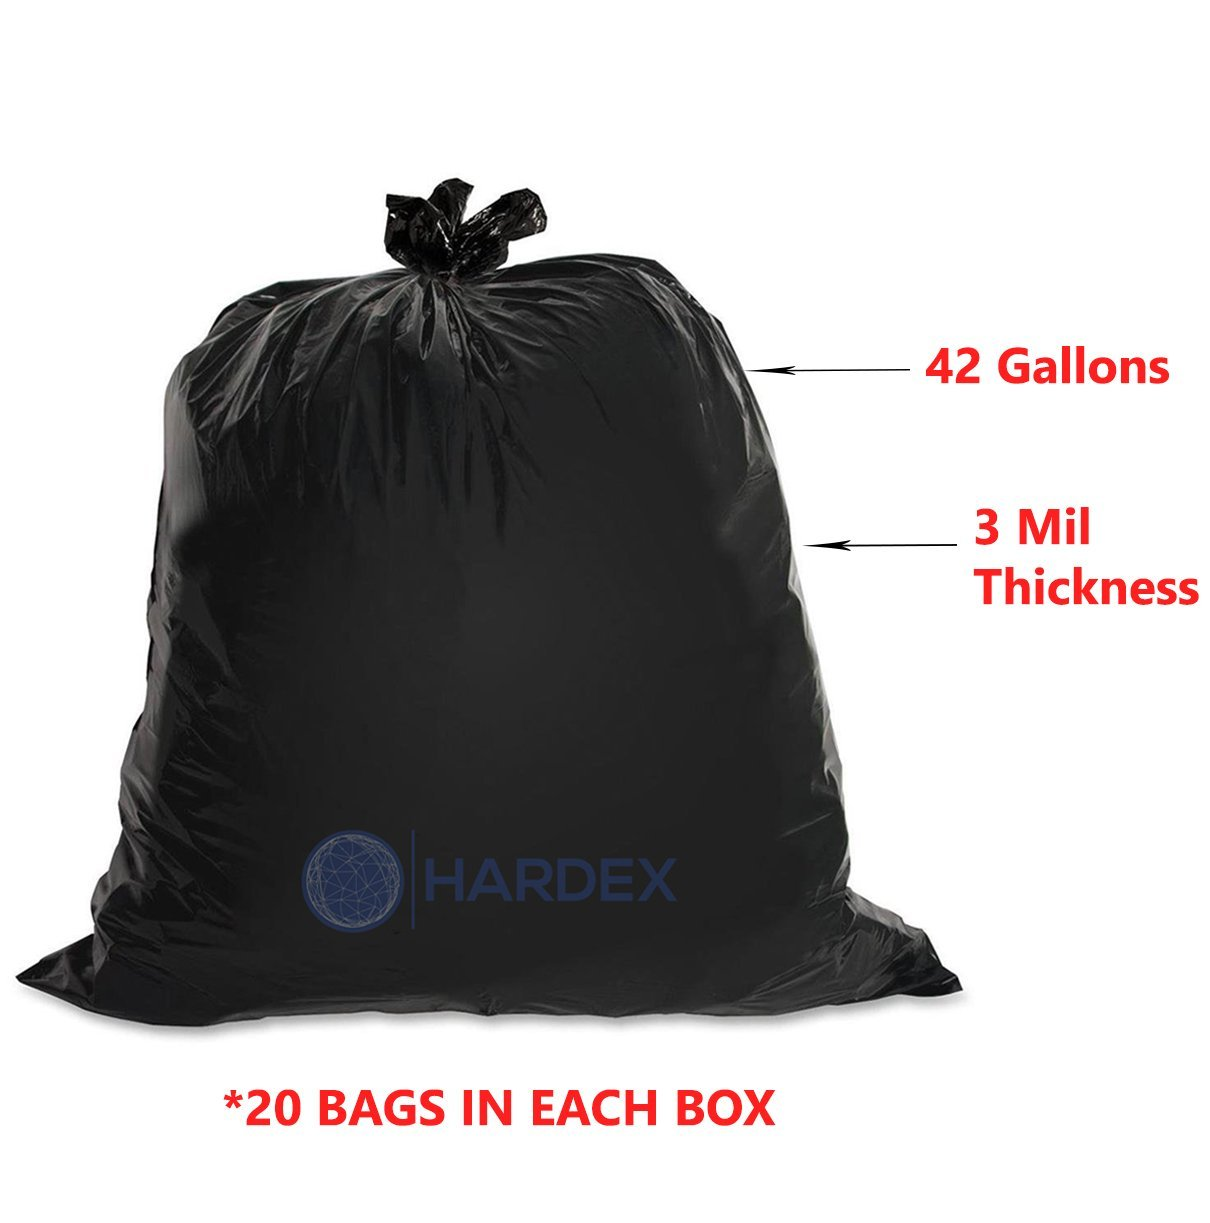 Hardex Puncture Resistant Heavy Duty Contractor Trash Bag, 42 Gallon Capacity, 3 Mil, 20 Count